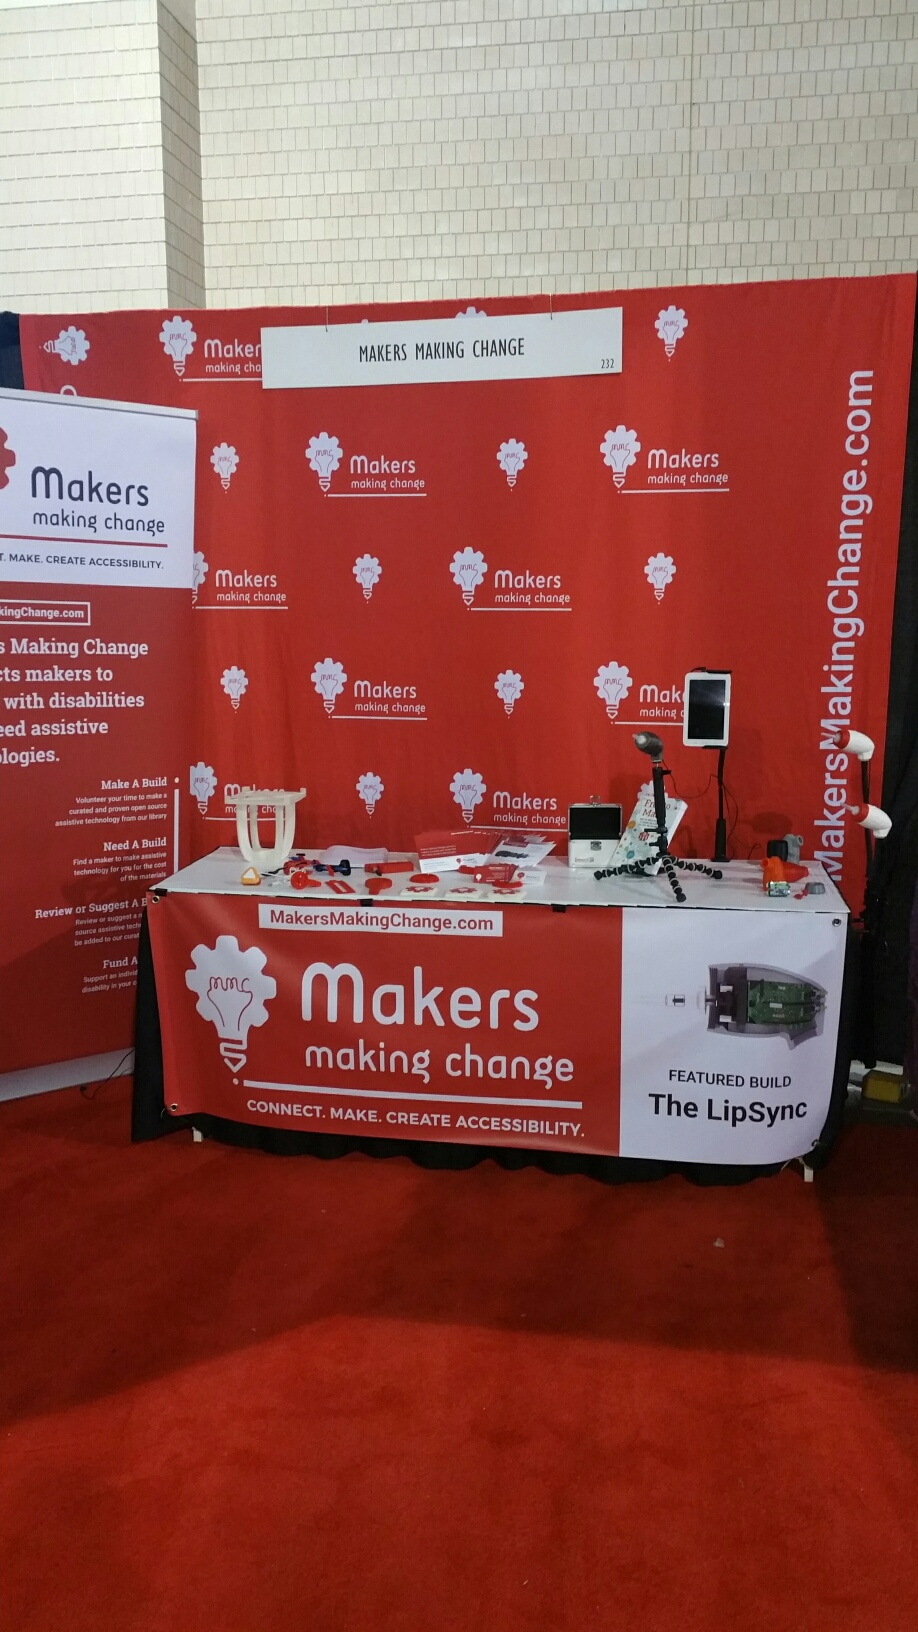 Our booth at the AOTA conference featured a homemade 3D printer